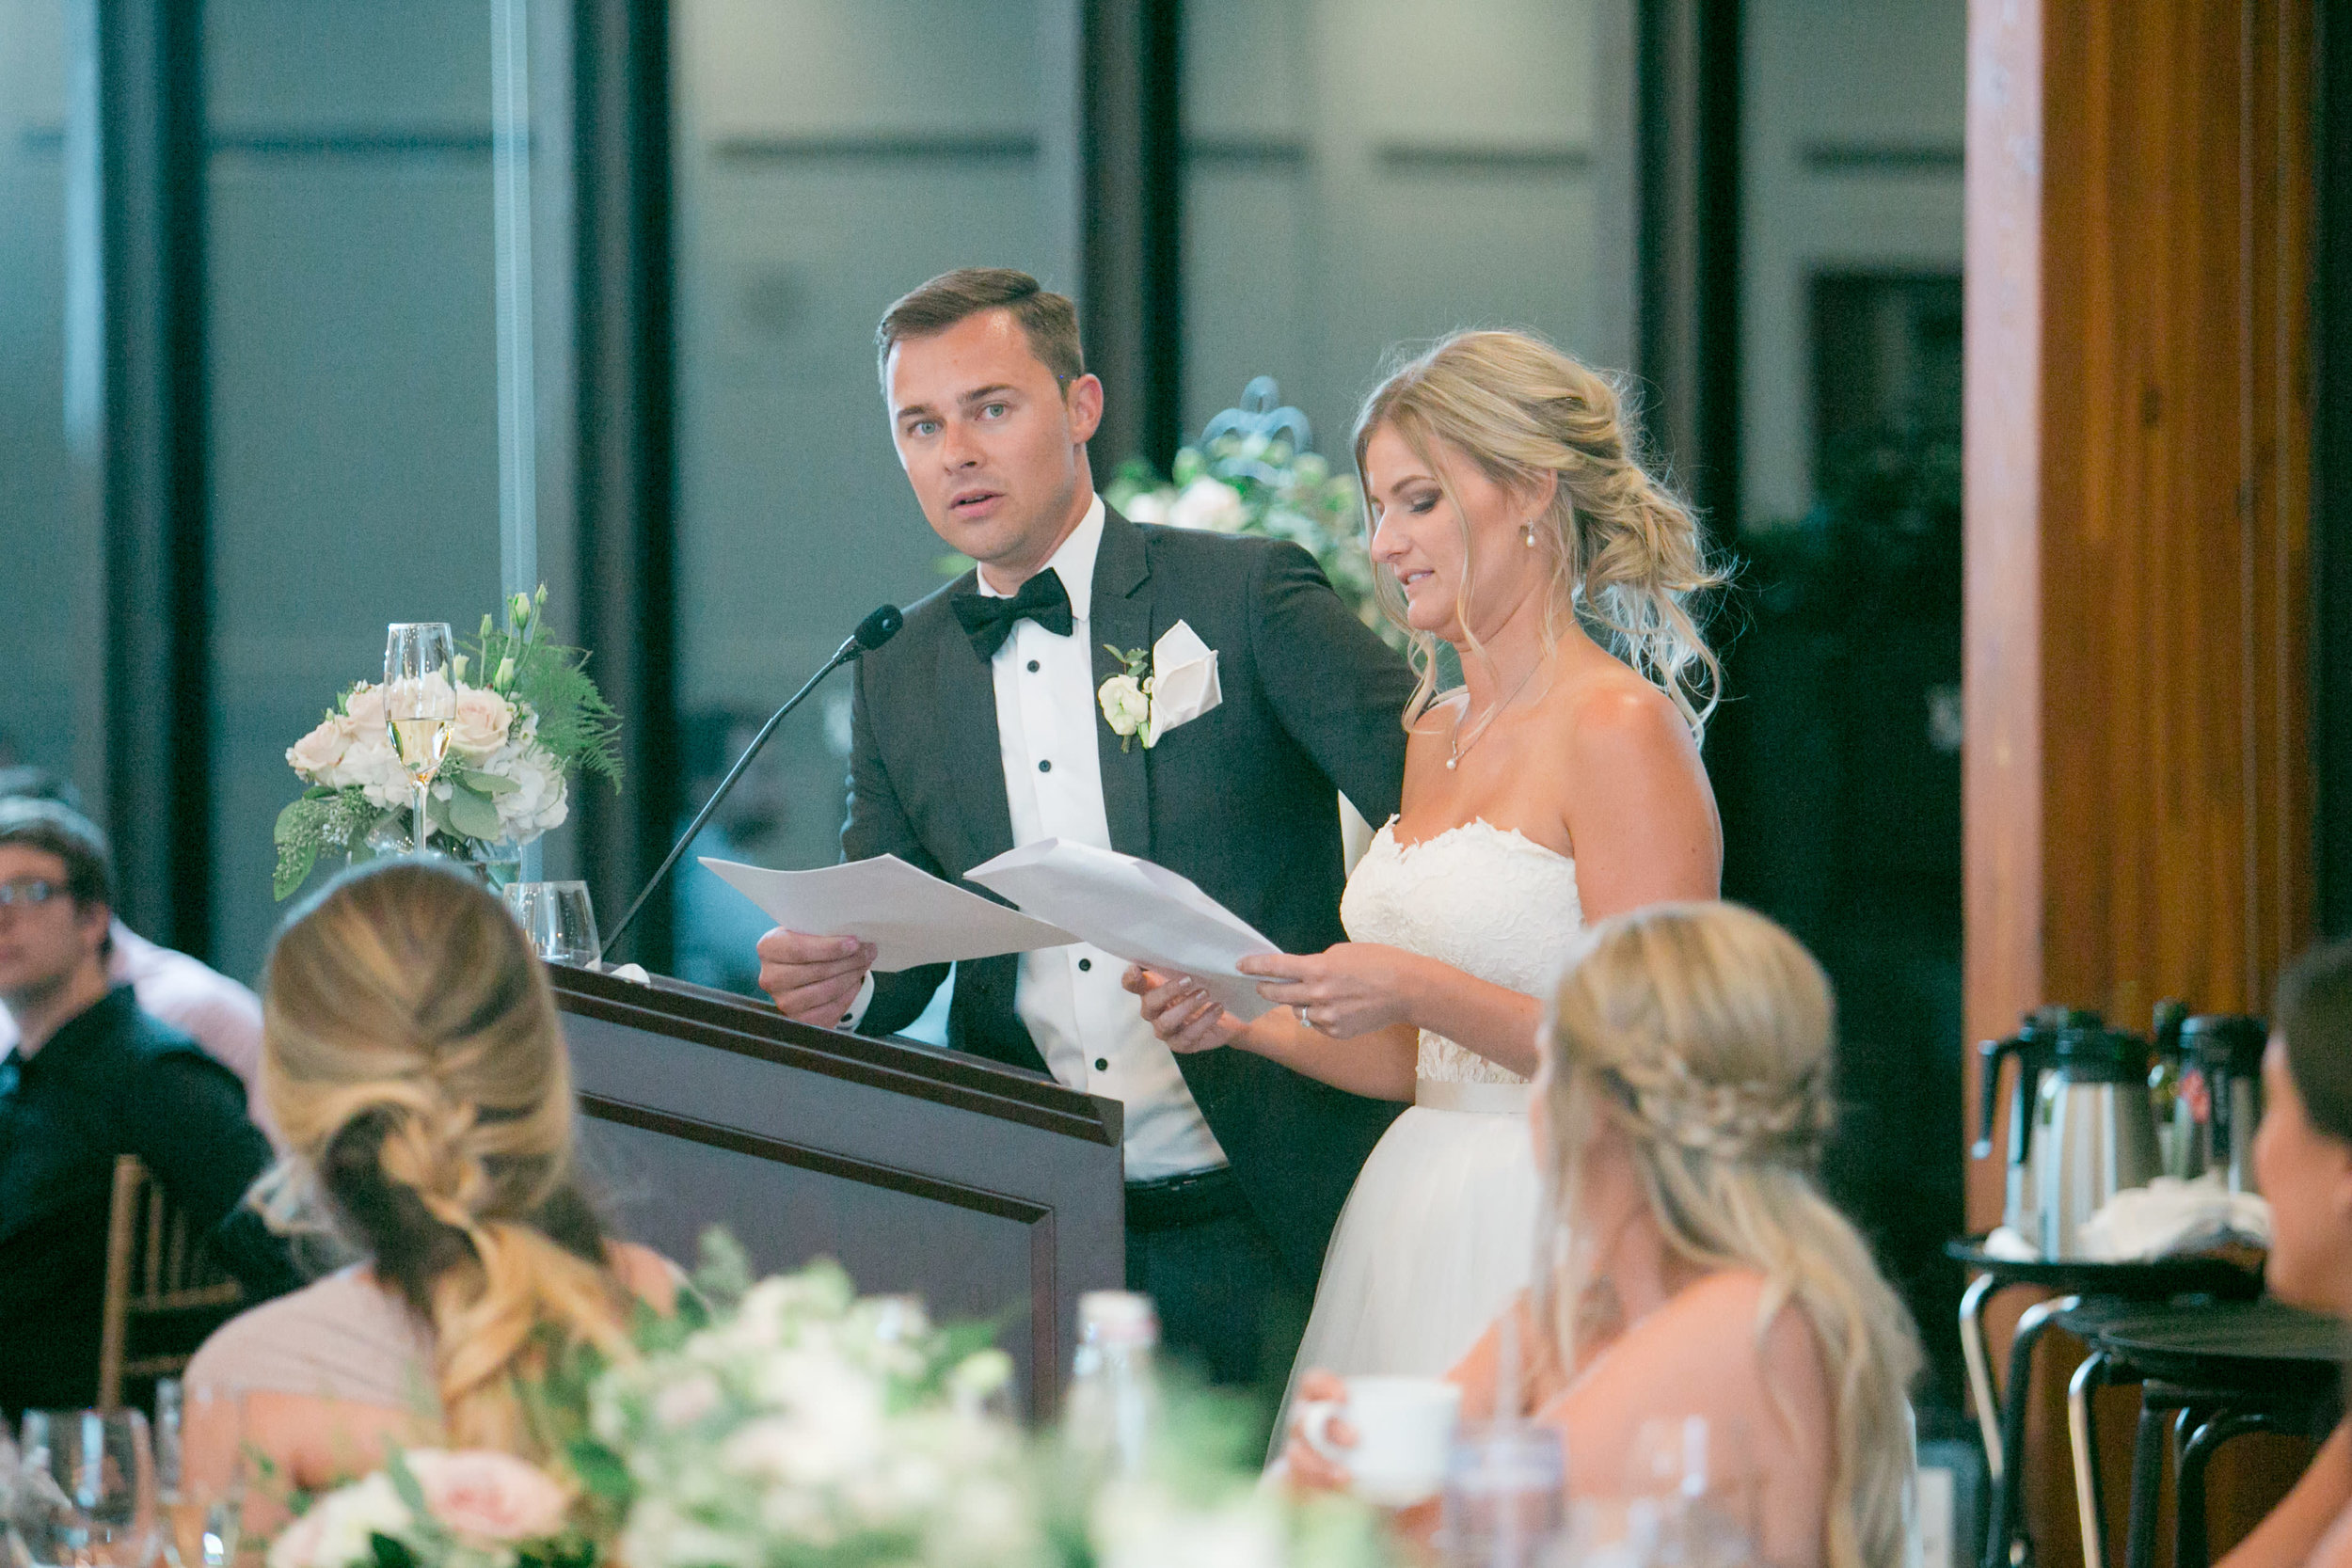 Kelsey___Daniel___High_Res_Finals___Daniel_Ricci_Weddings_596.jpg